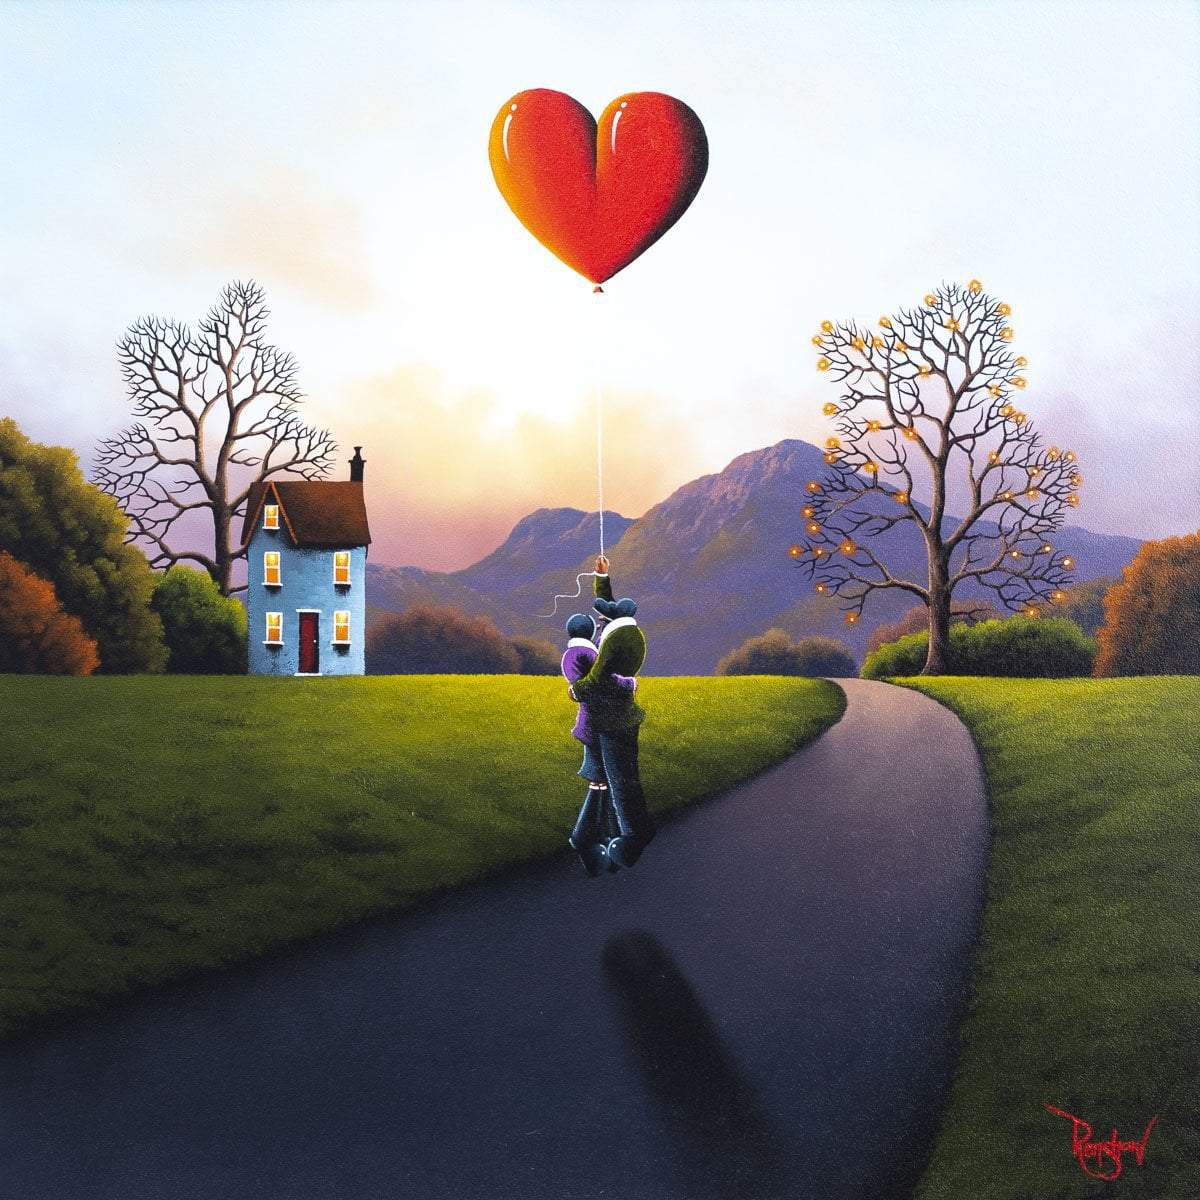 Our Love Takes Us Higher - Original David Renshaw Framed